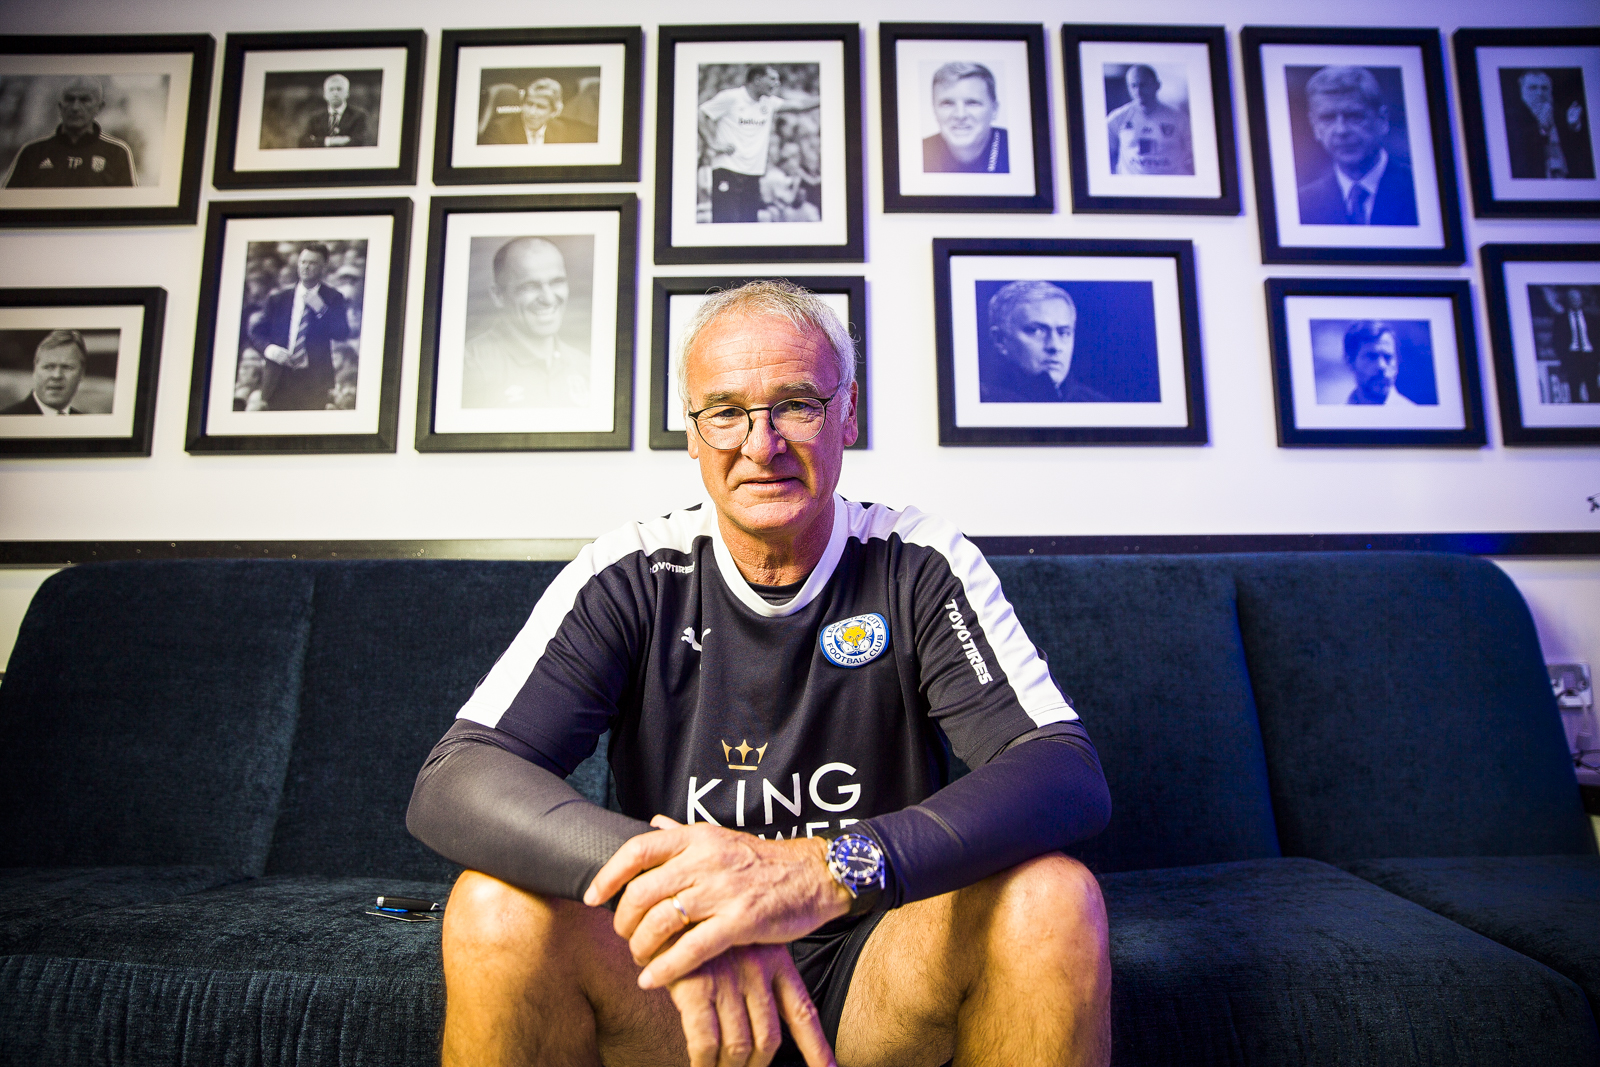 Leicester City manager Claudio Ranieri at the King Power Stadium